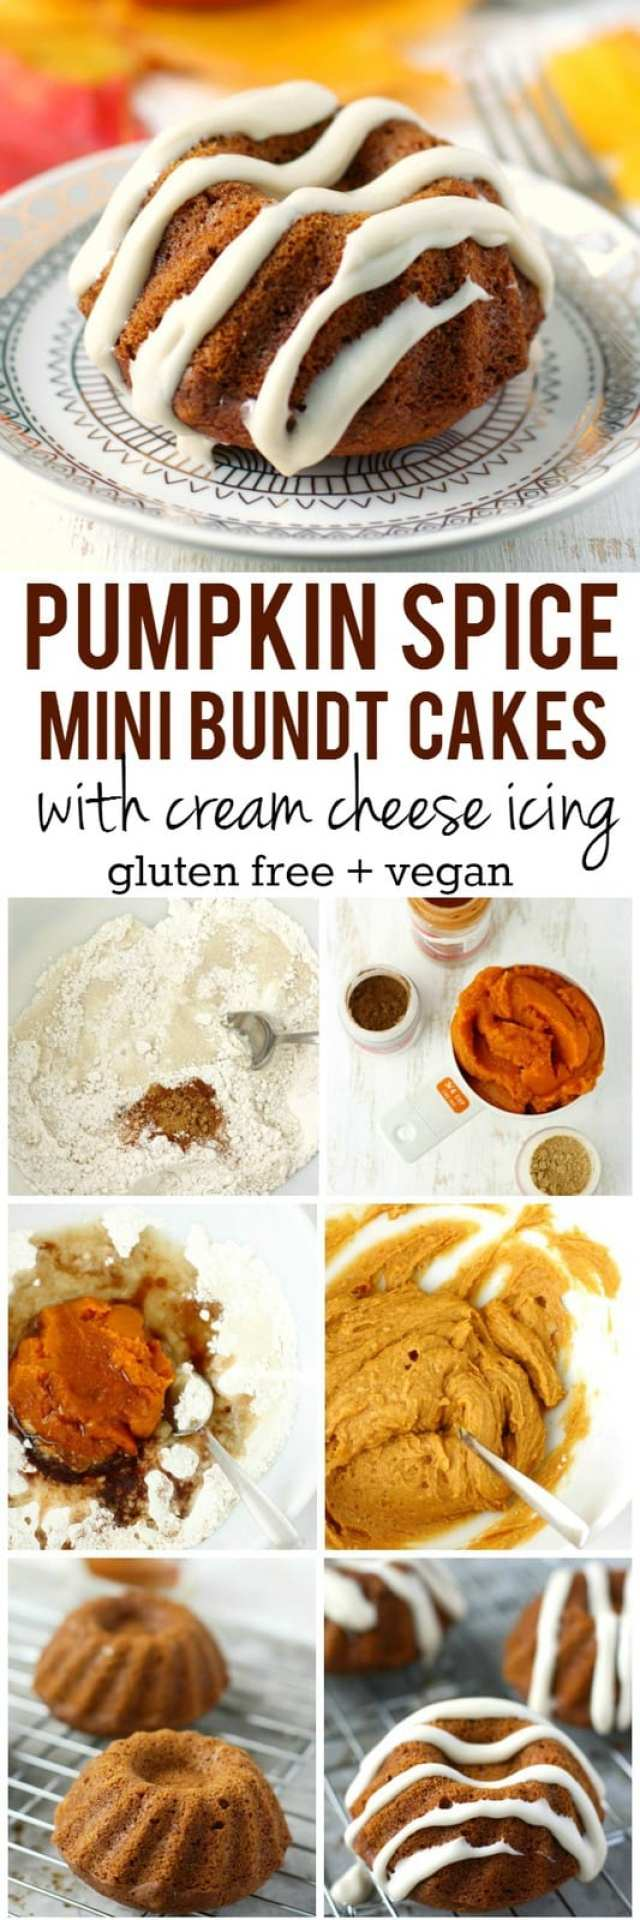 These pumpkin spice mini bundt cakes are so delicious - the sweet cream cheese glaze is the perfect finishing touch! These are perfect for Thanksgiving! #vegan #glutenfree AD #shop